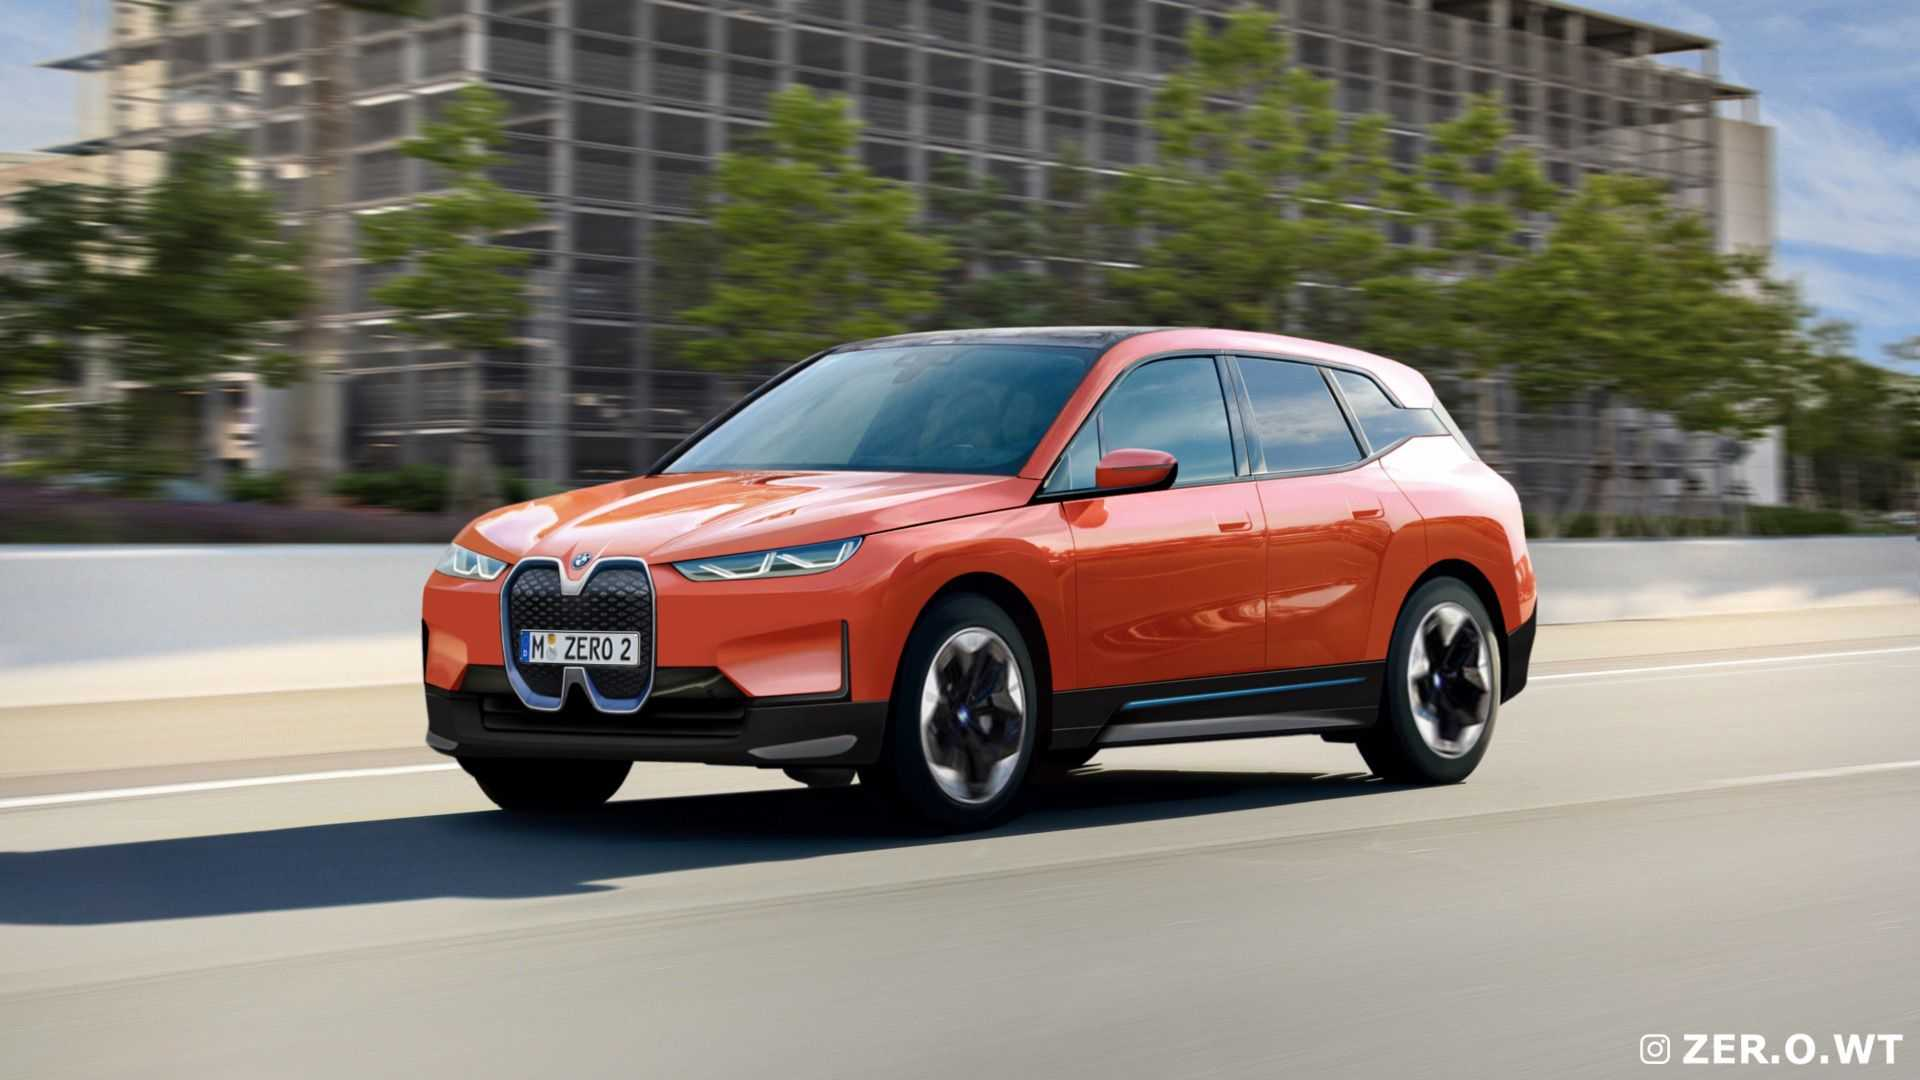 2021 BMW iNext Specifications and Pricing Revealed, EV Race is On